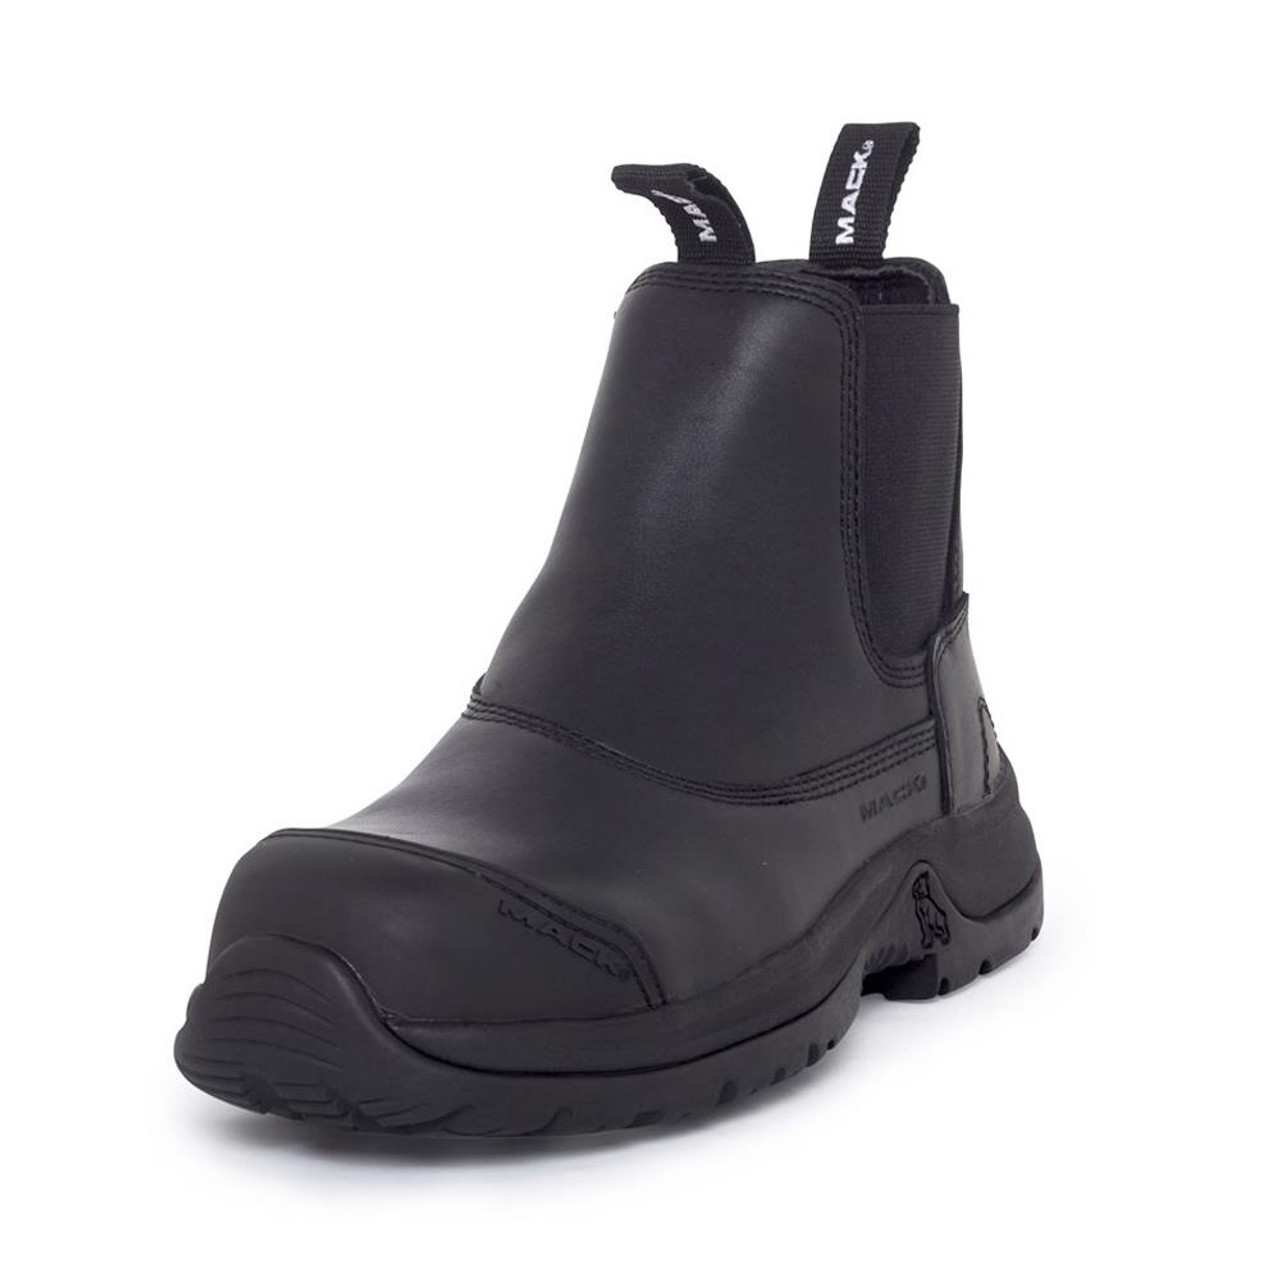 81bde6fd0ec Mack Boots Barb II Composite Toe Slip and Water Resistant Pull On ...